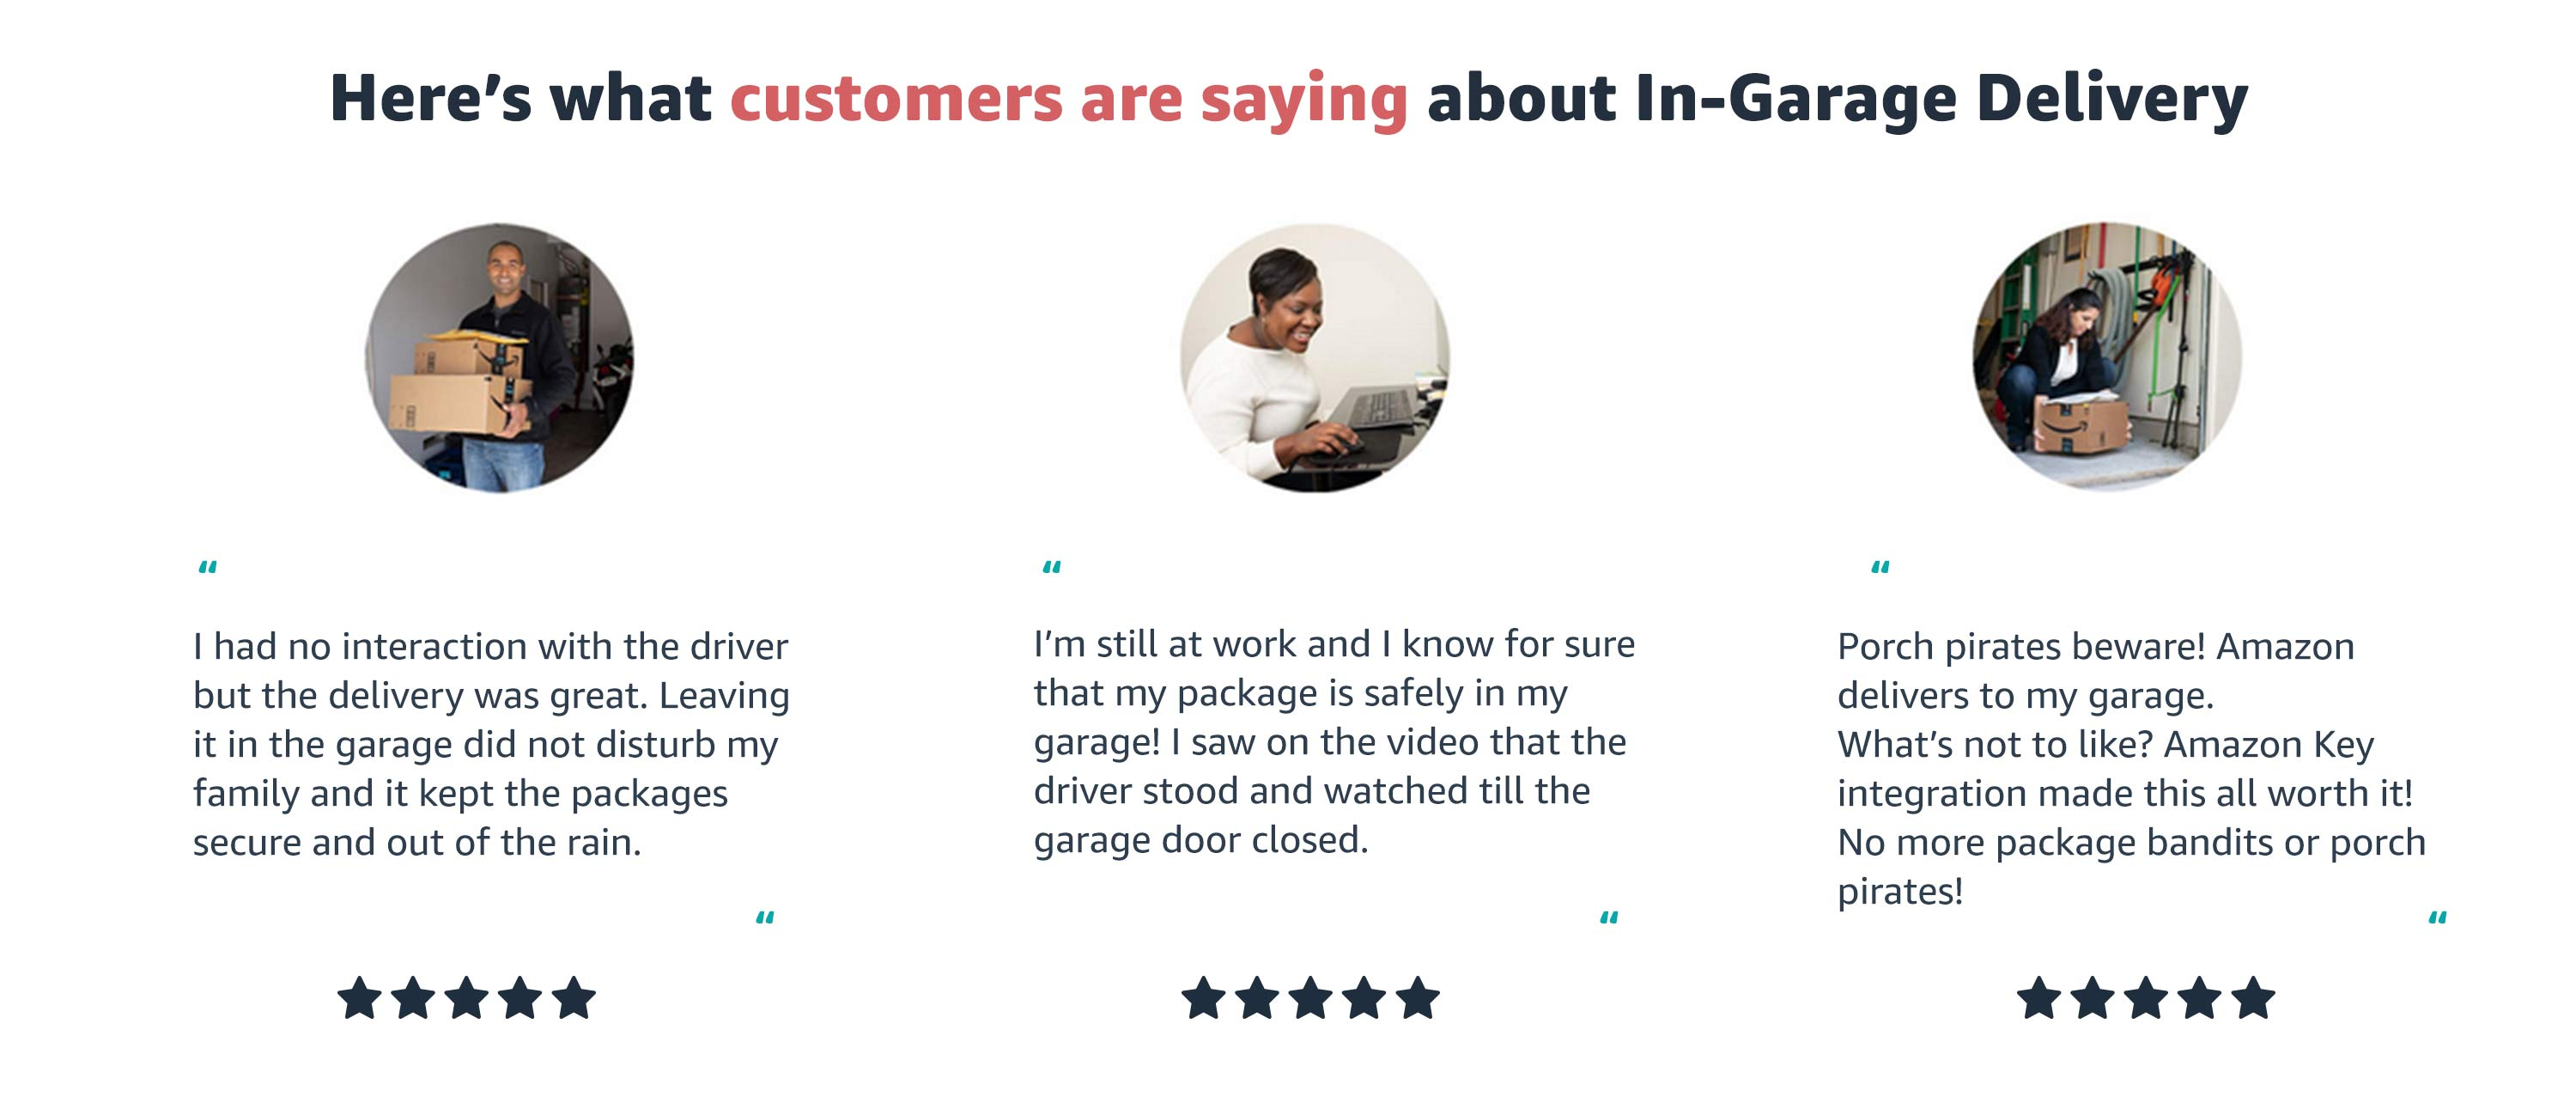 "Here's what customers are saying. ""I know for sure that my package is safely in my garage!"""